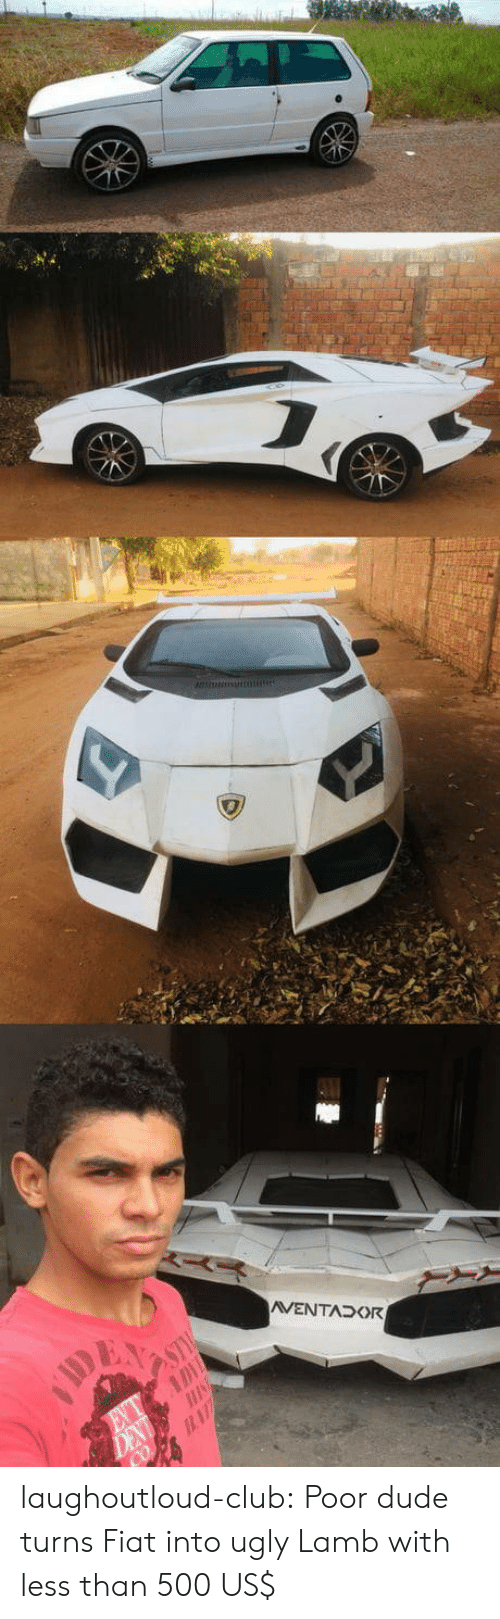 Club, Dude, and Tumblr: laughoutloud-club:  Poor dude turns Fiat into ugly Lamb with less than 500 US$